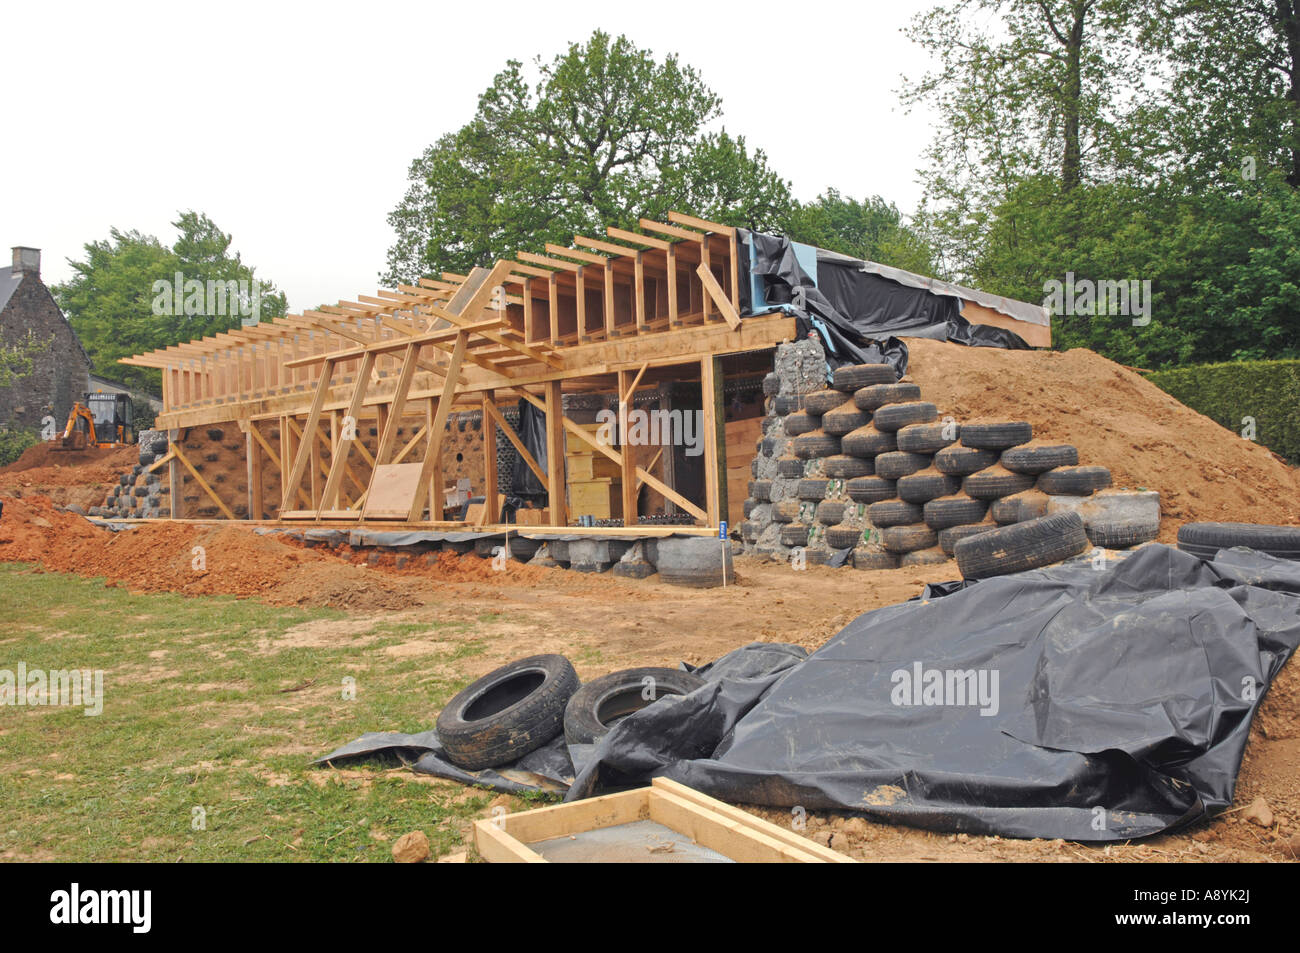 Construction Earthship House Ger Manche France